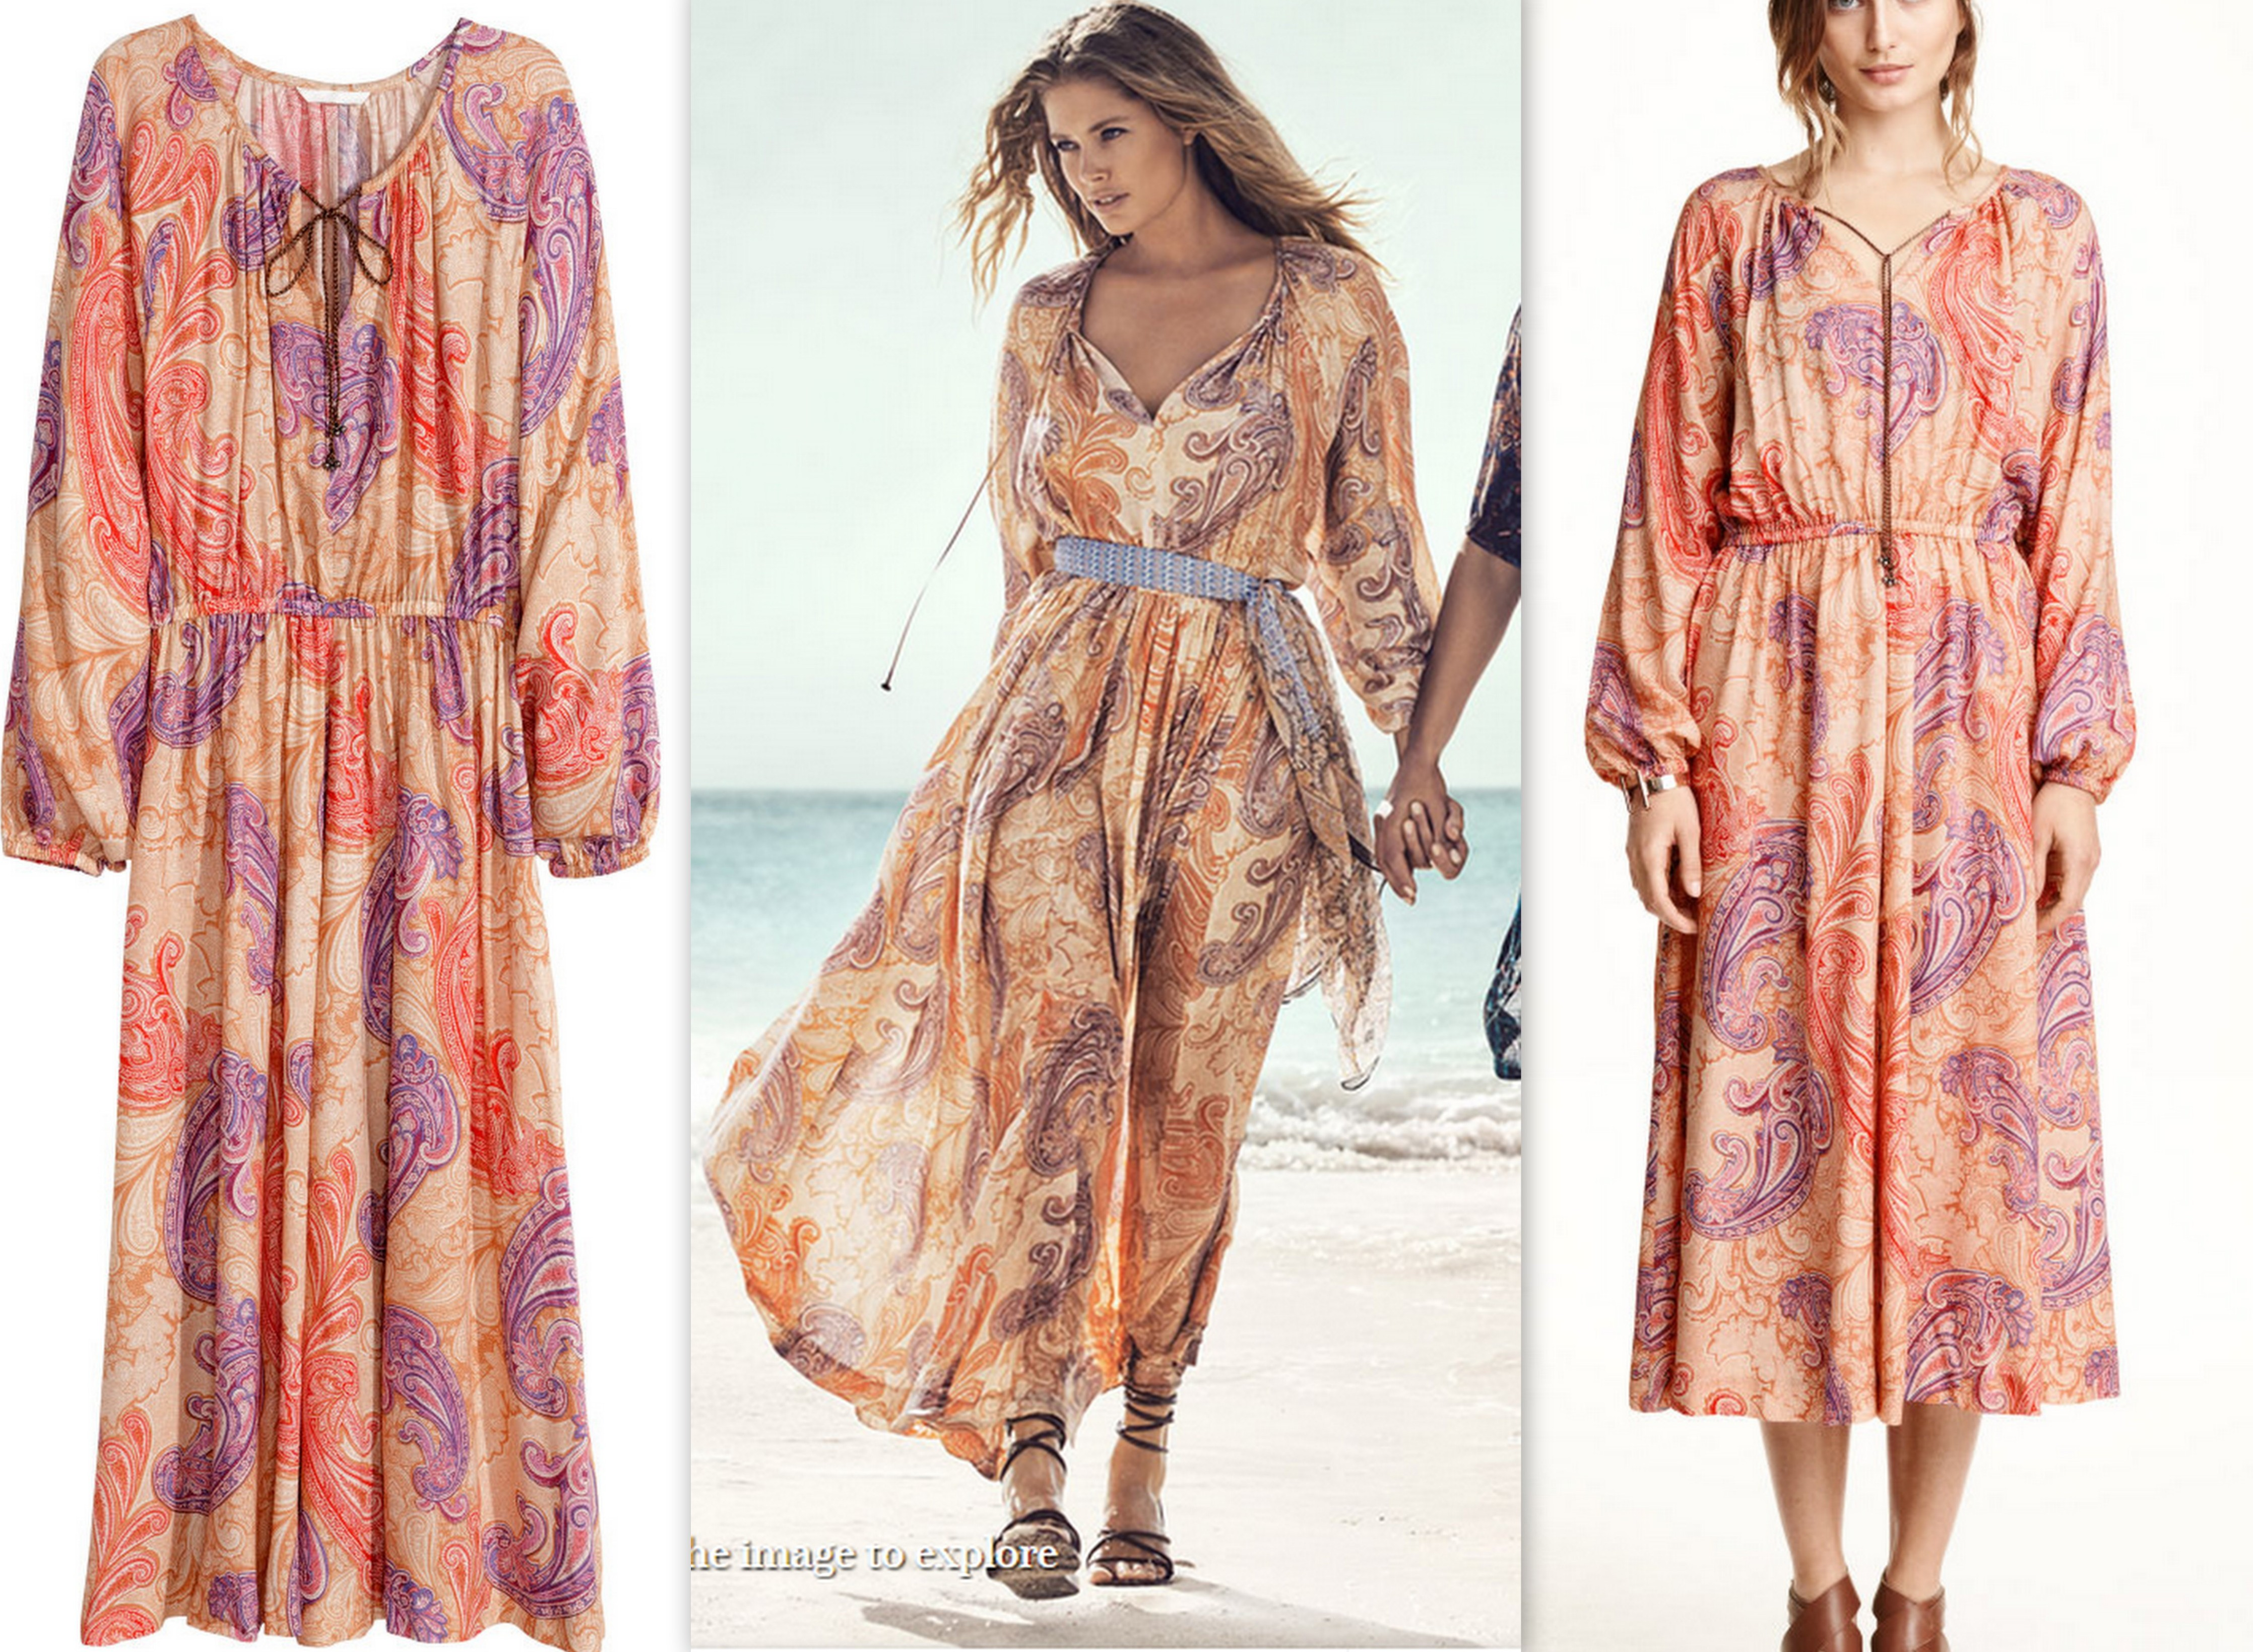 cadfb1d814 Paisley beach kaftan dress HM summer collection LMUW AVS – Avs house ...